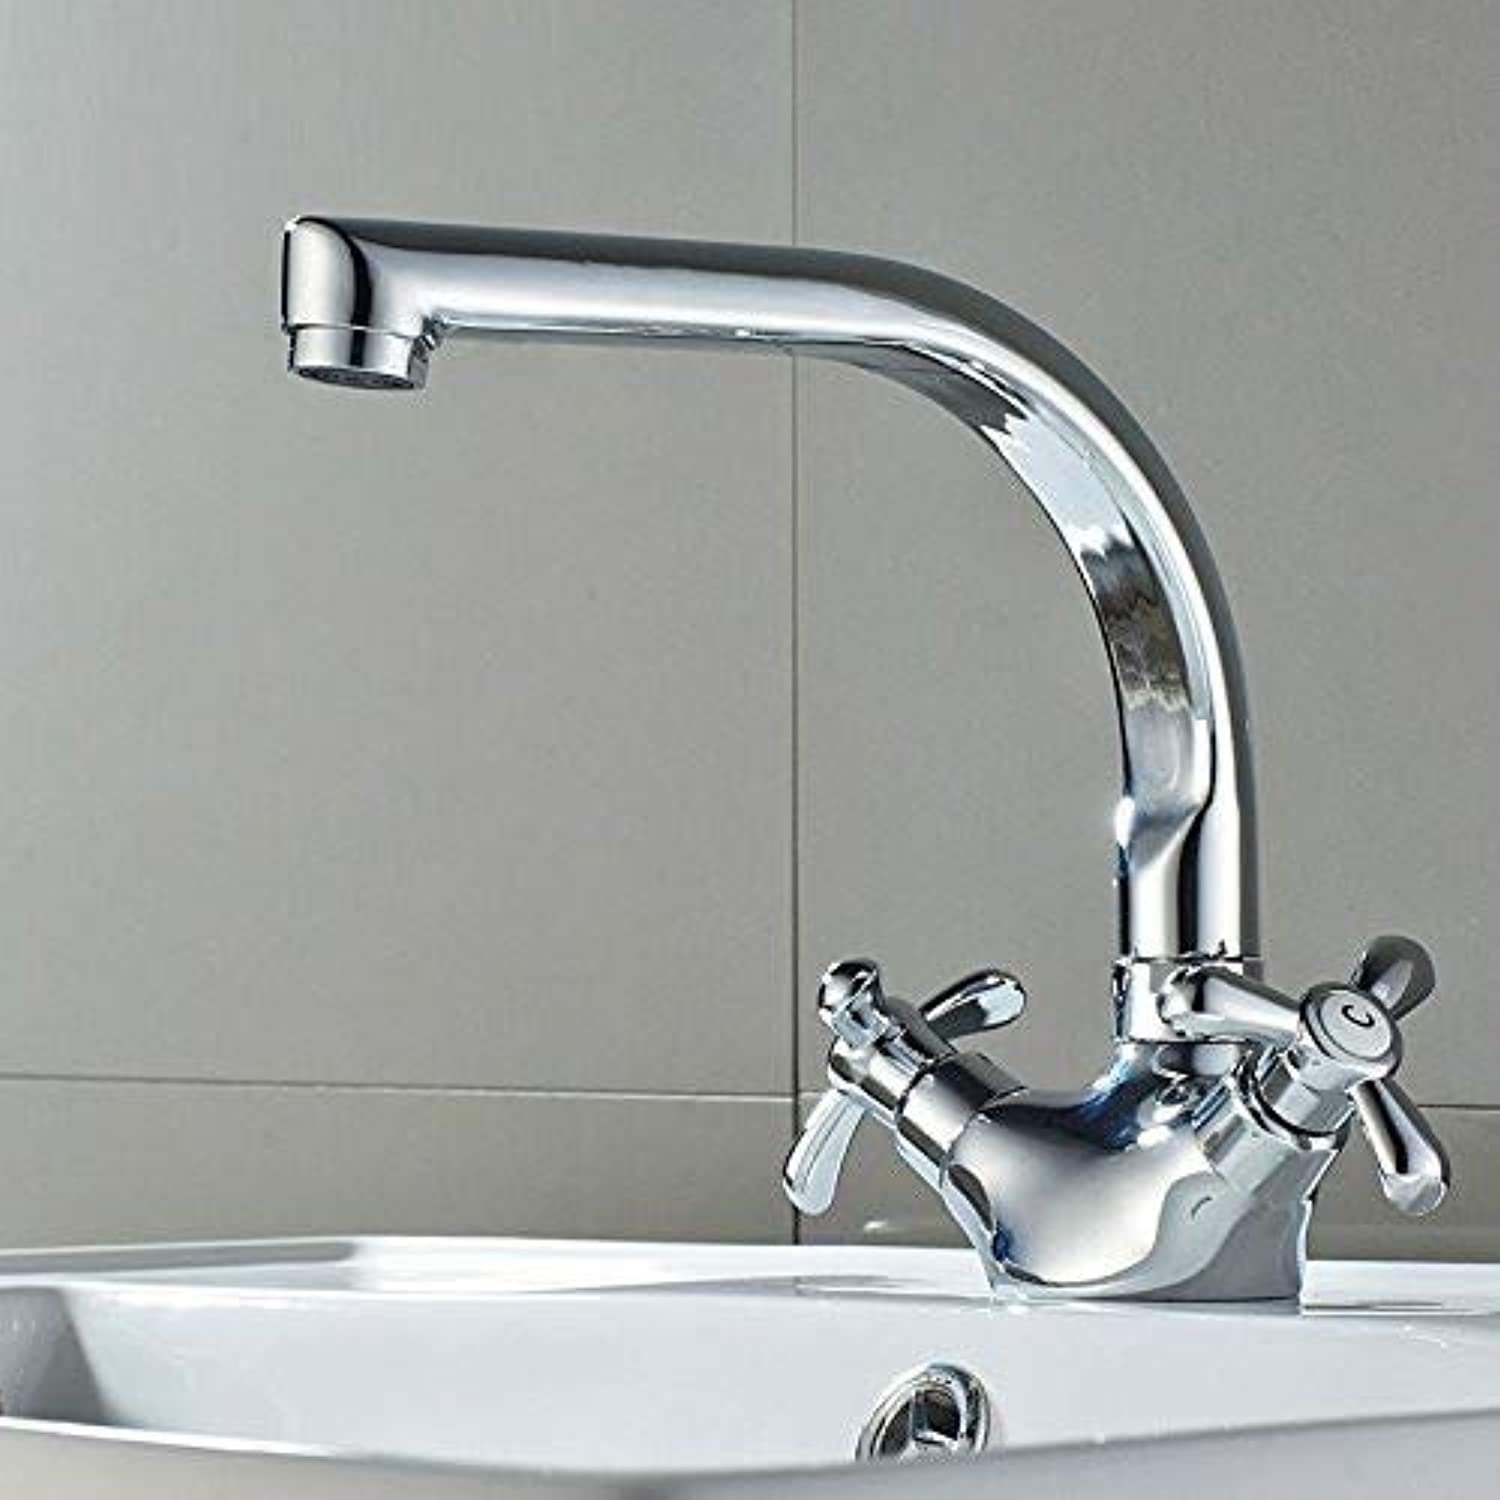 redOOY Taps Basin Faucet Deck Mounted Hot And Cold Water Polished Chrome Process Swivel Mixer Tap Taps